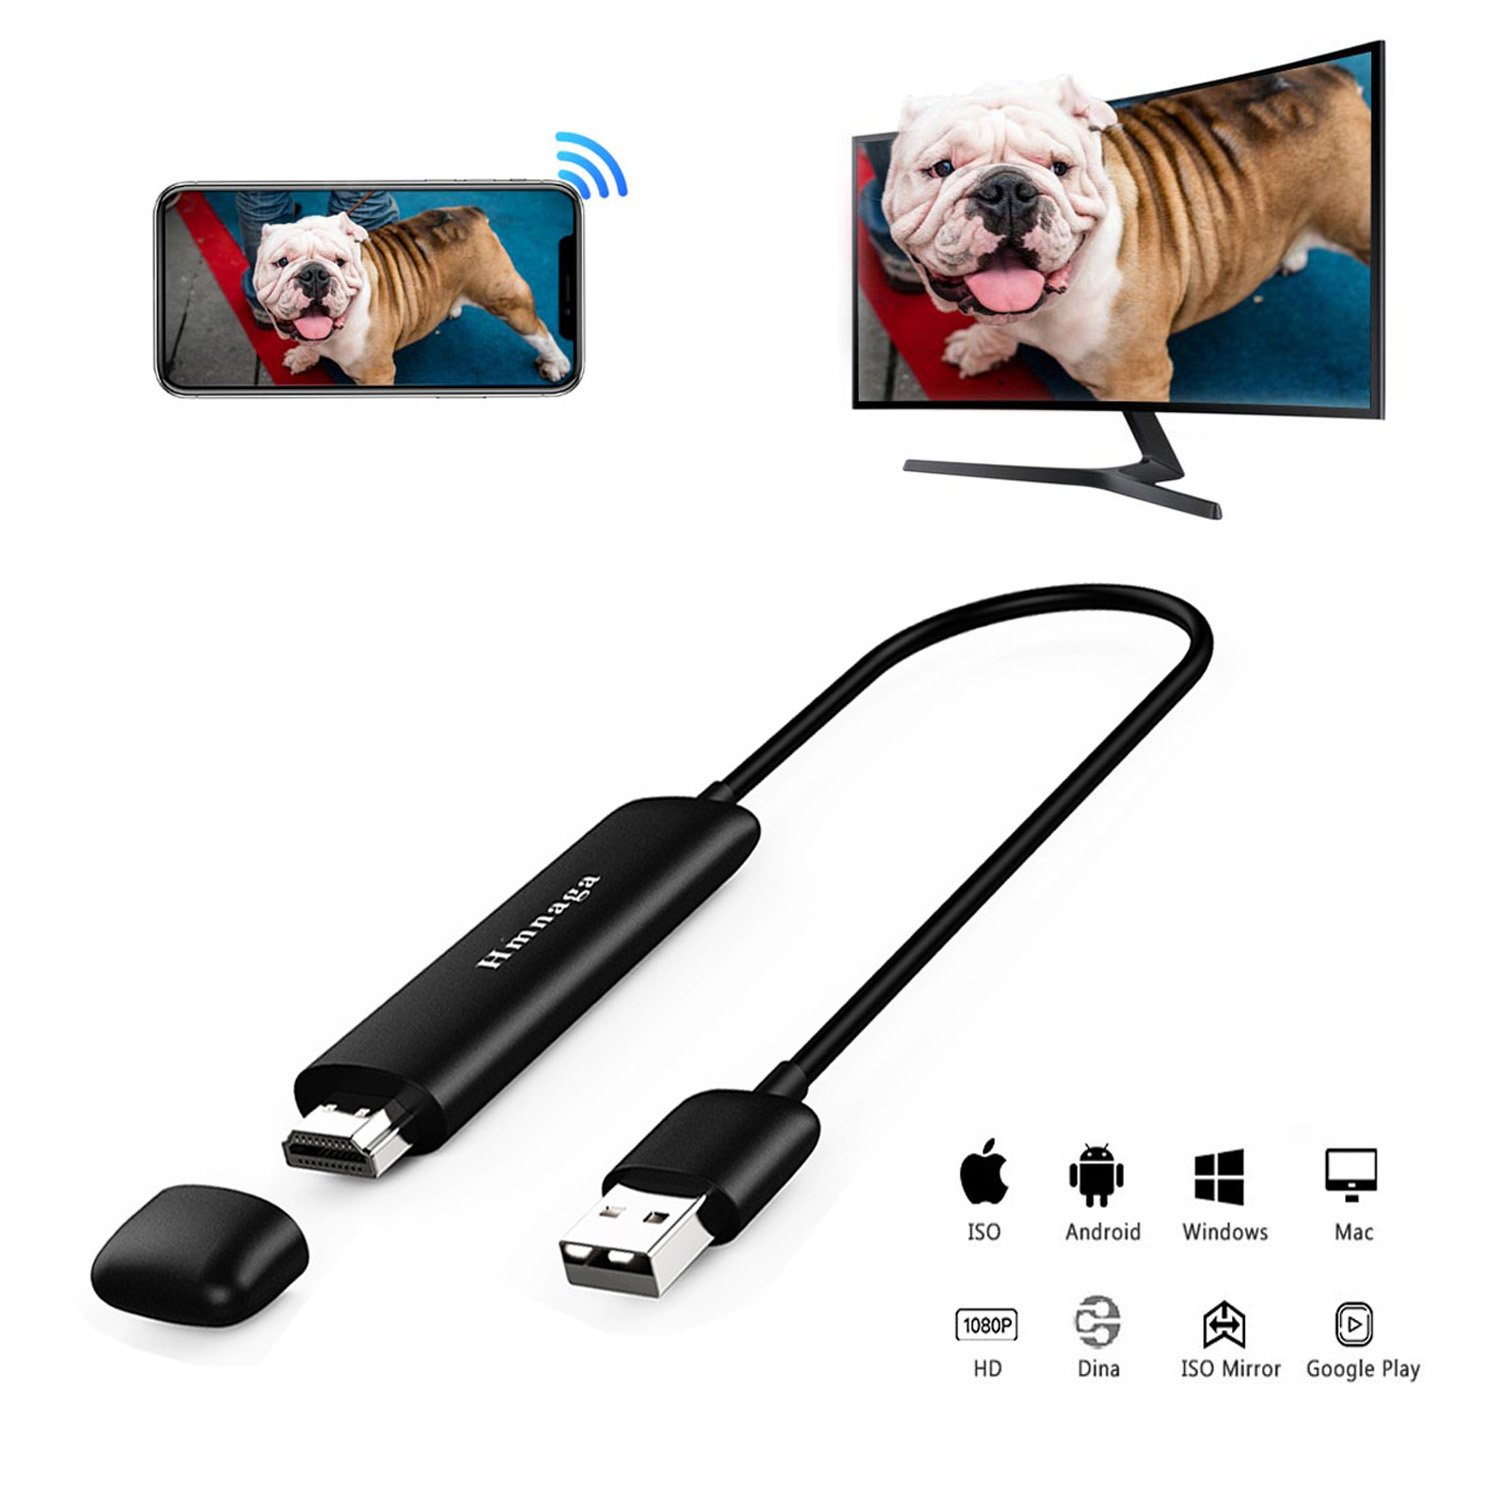 5G WiFi Wireless Display Dongle, Venoro Full HD 1080P HDMI Screen Mirroring Mini Display Adapter Support Miracast/Airplay / DLNA/WIDI for IOS/Android / Mac OS/Win 8.1+ (WD01) by Venoro